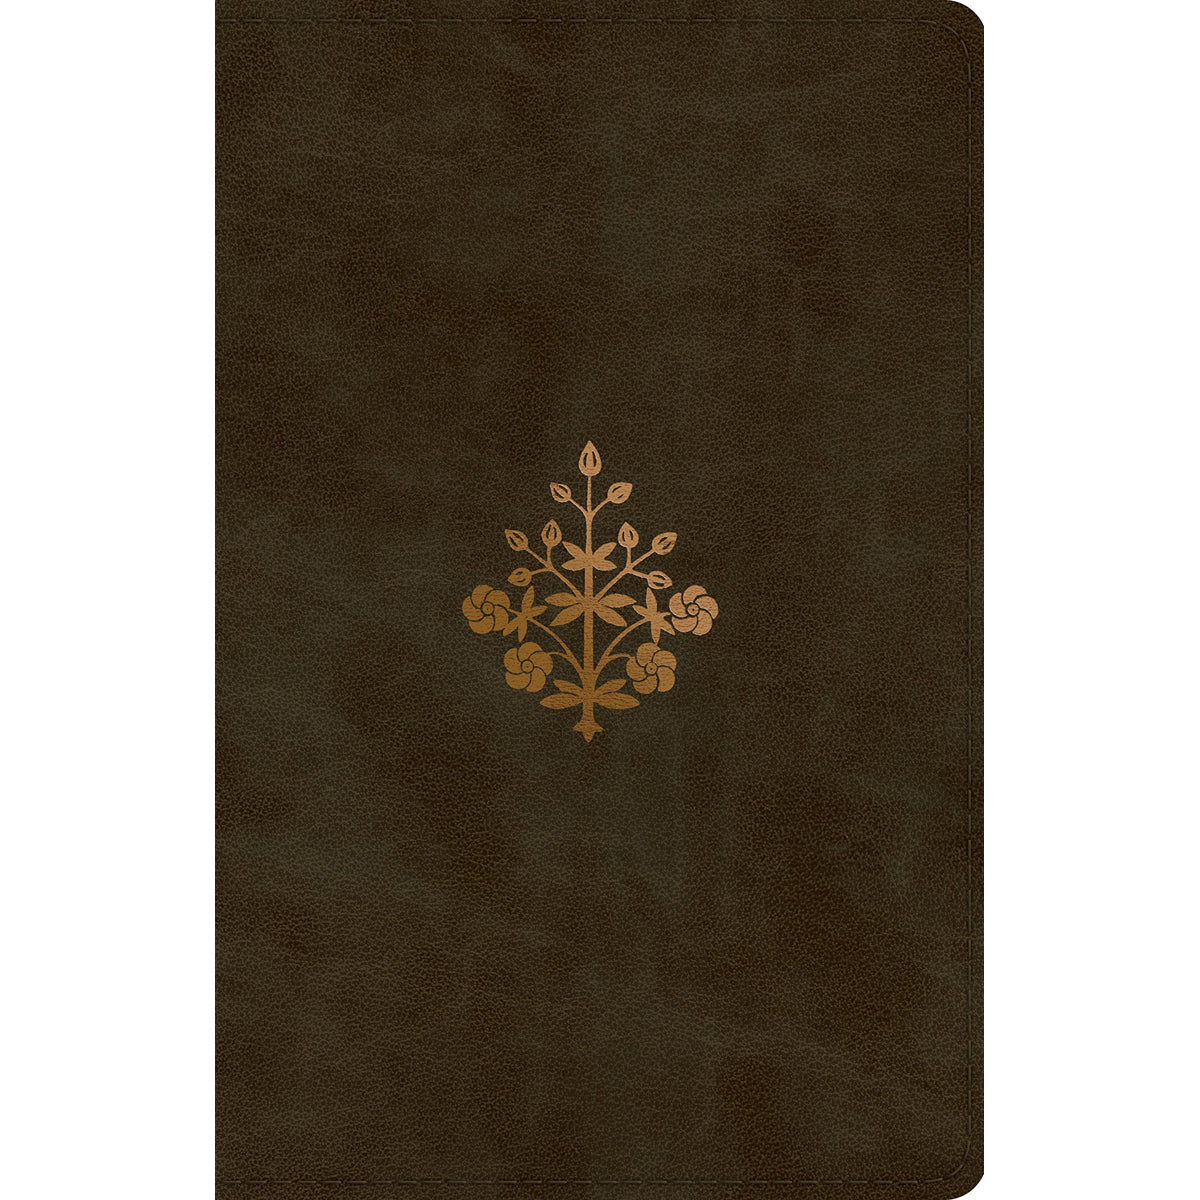 ESV Large Print Thinline Reference Bible Olive Branch Design (Imitation Leather)